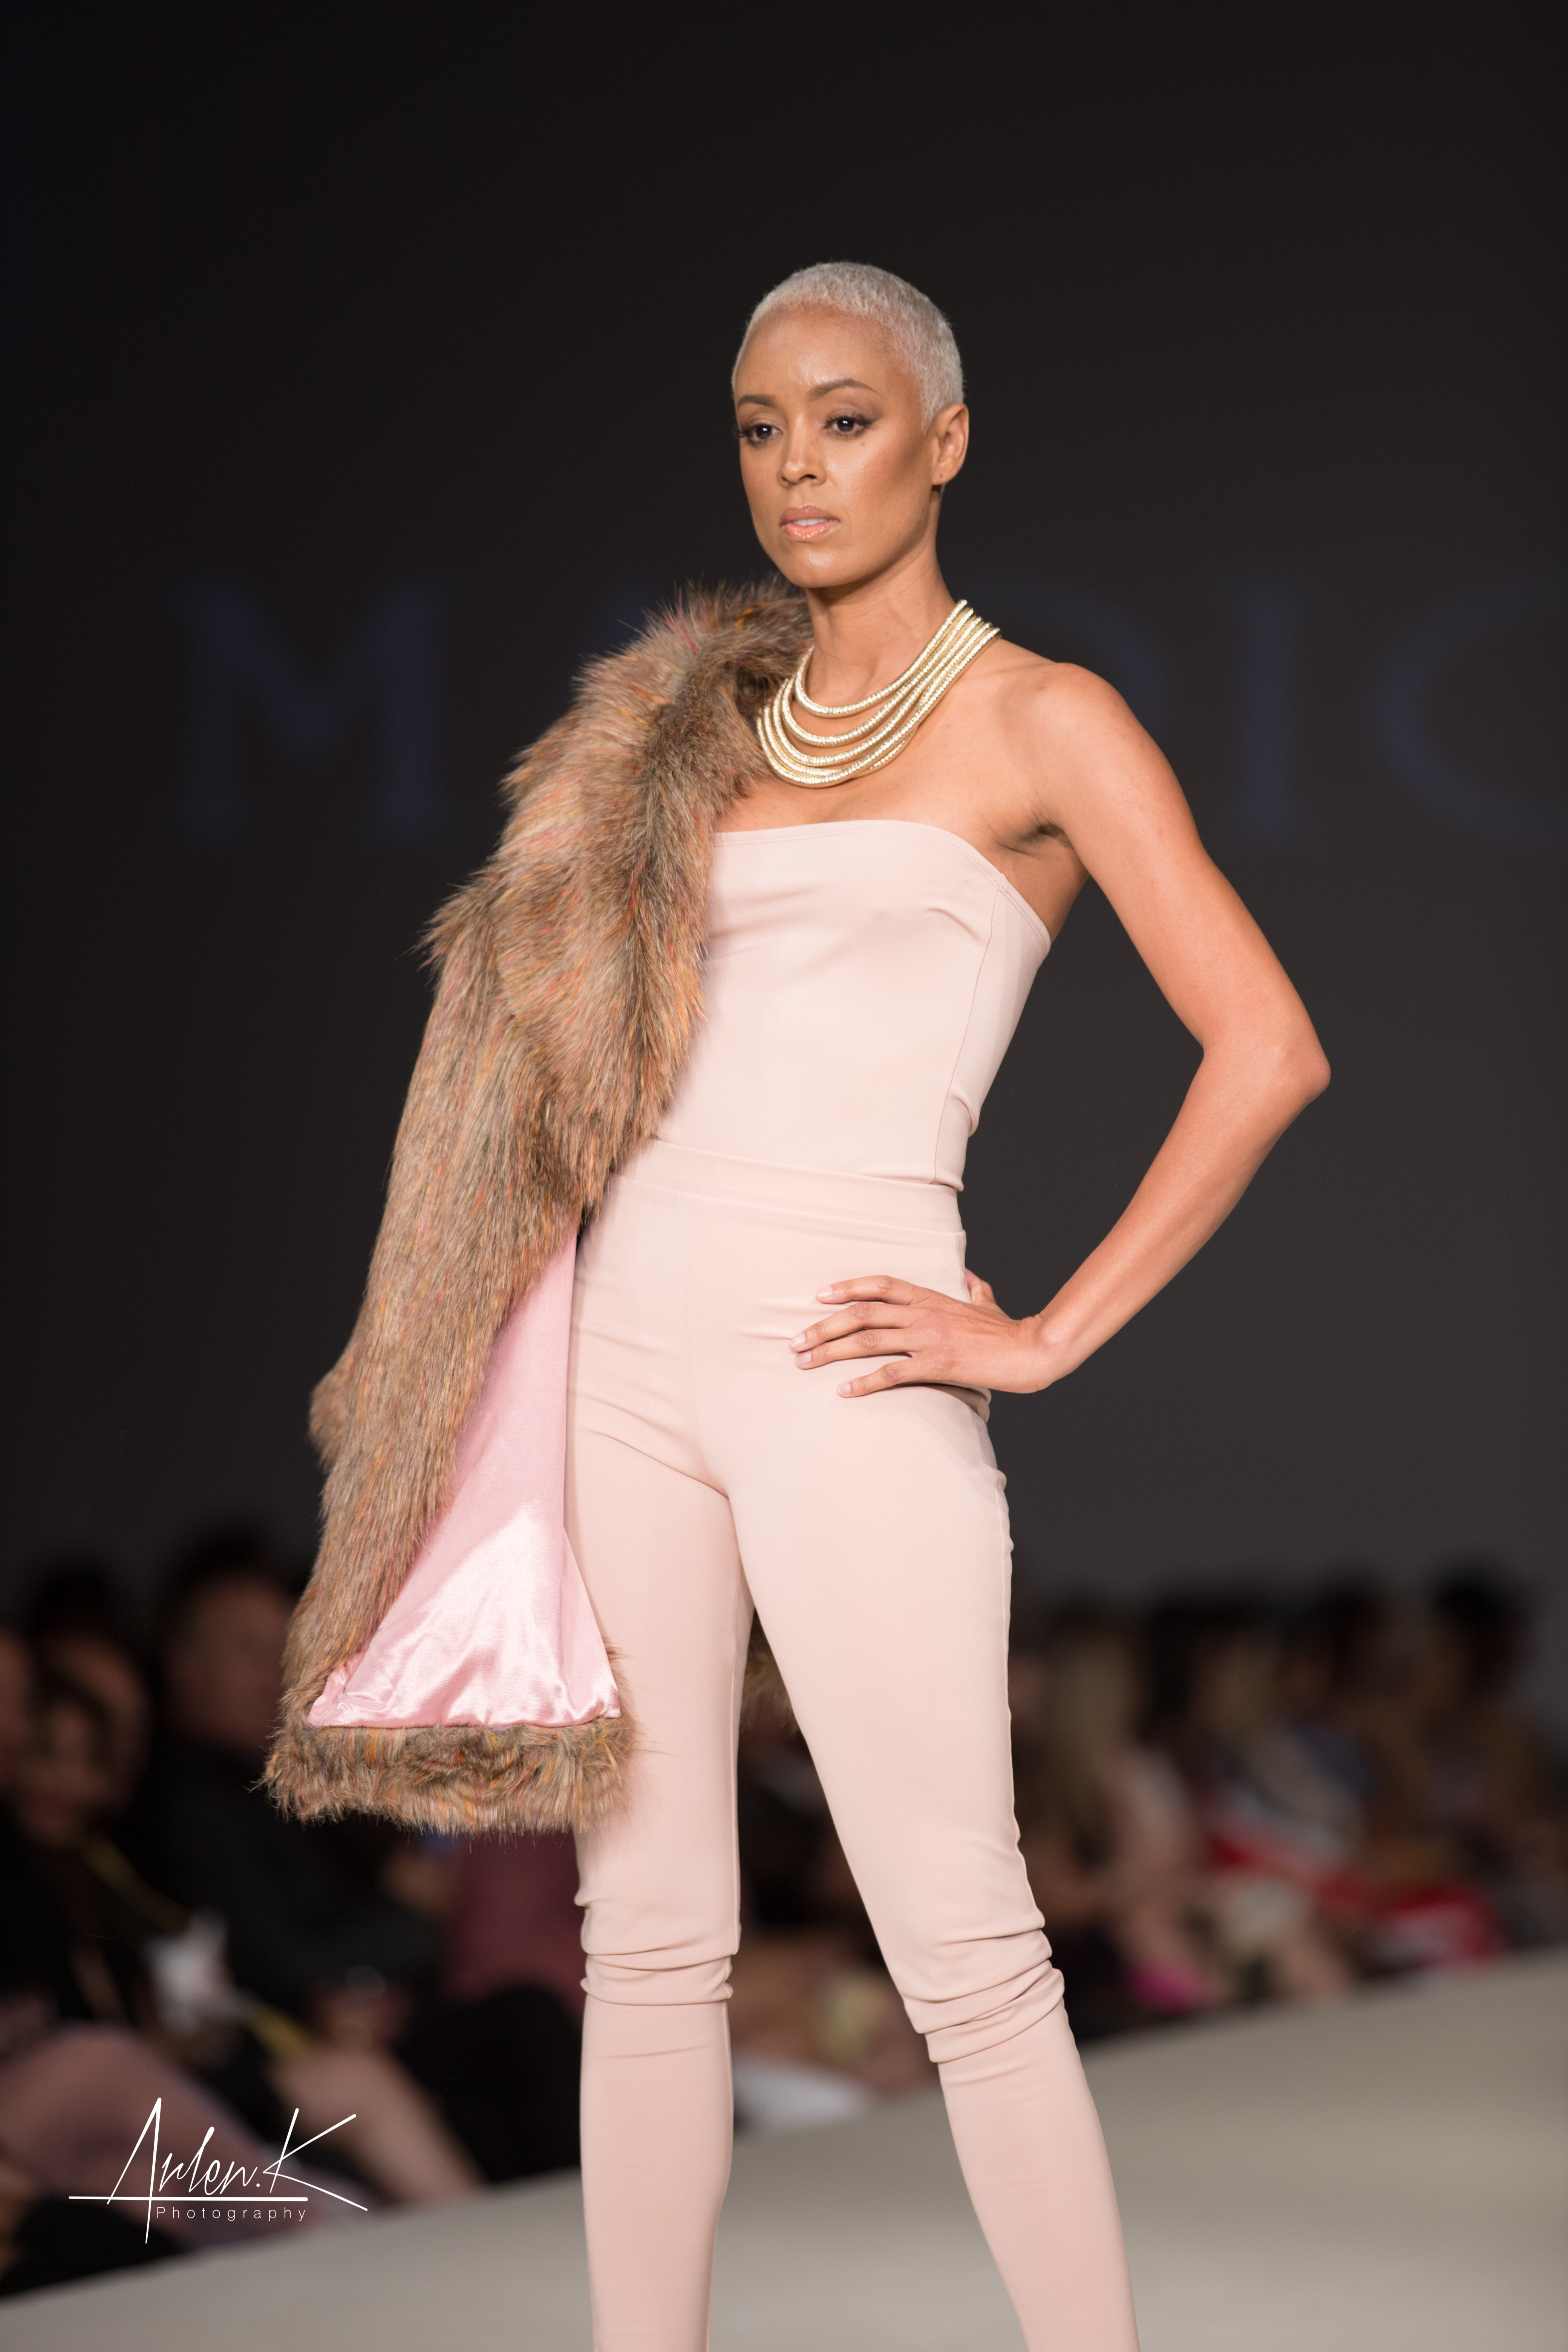 Hot Designer Mario De La Torre Excites At Style Fashion Week Palm Springs Cie Fashion Magazine